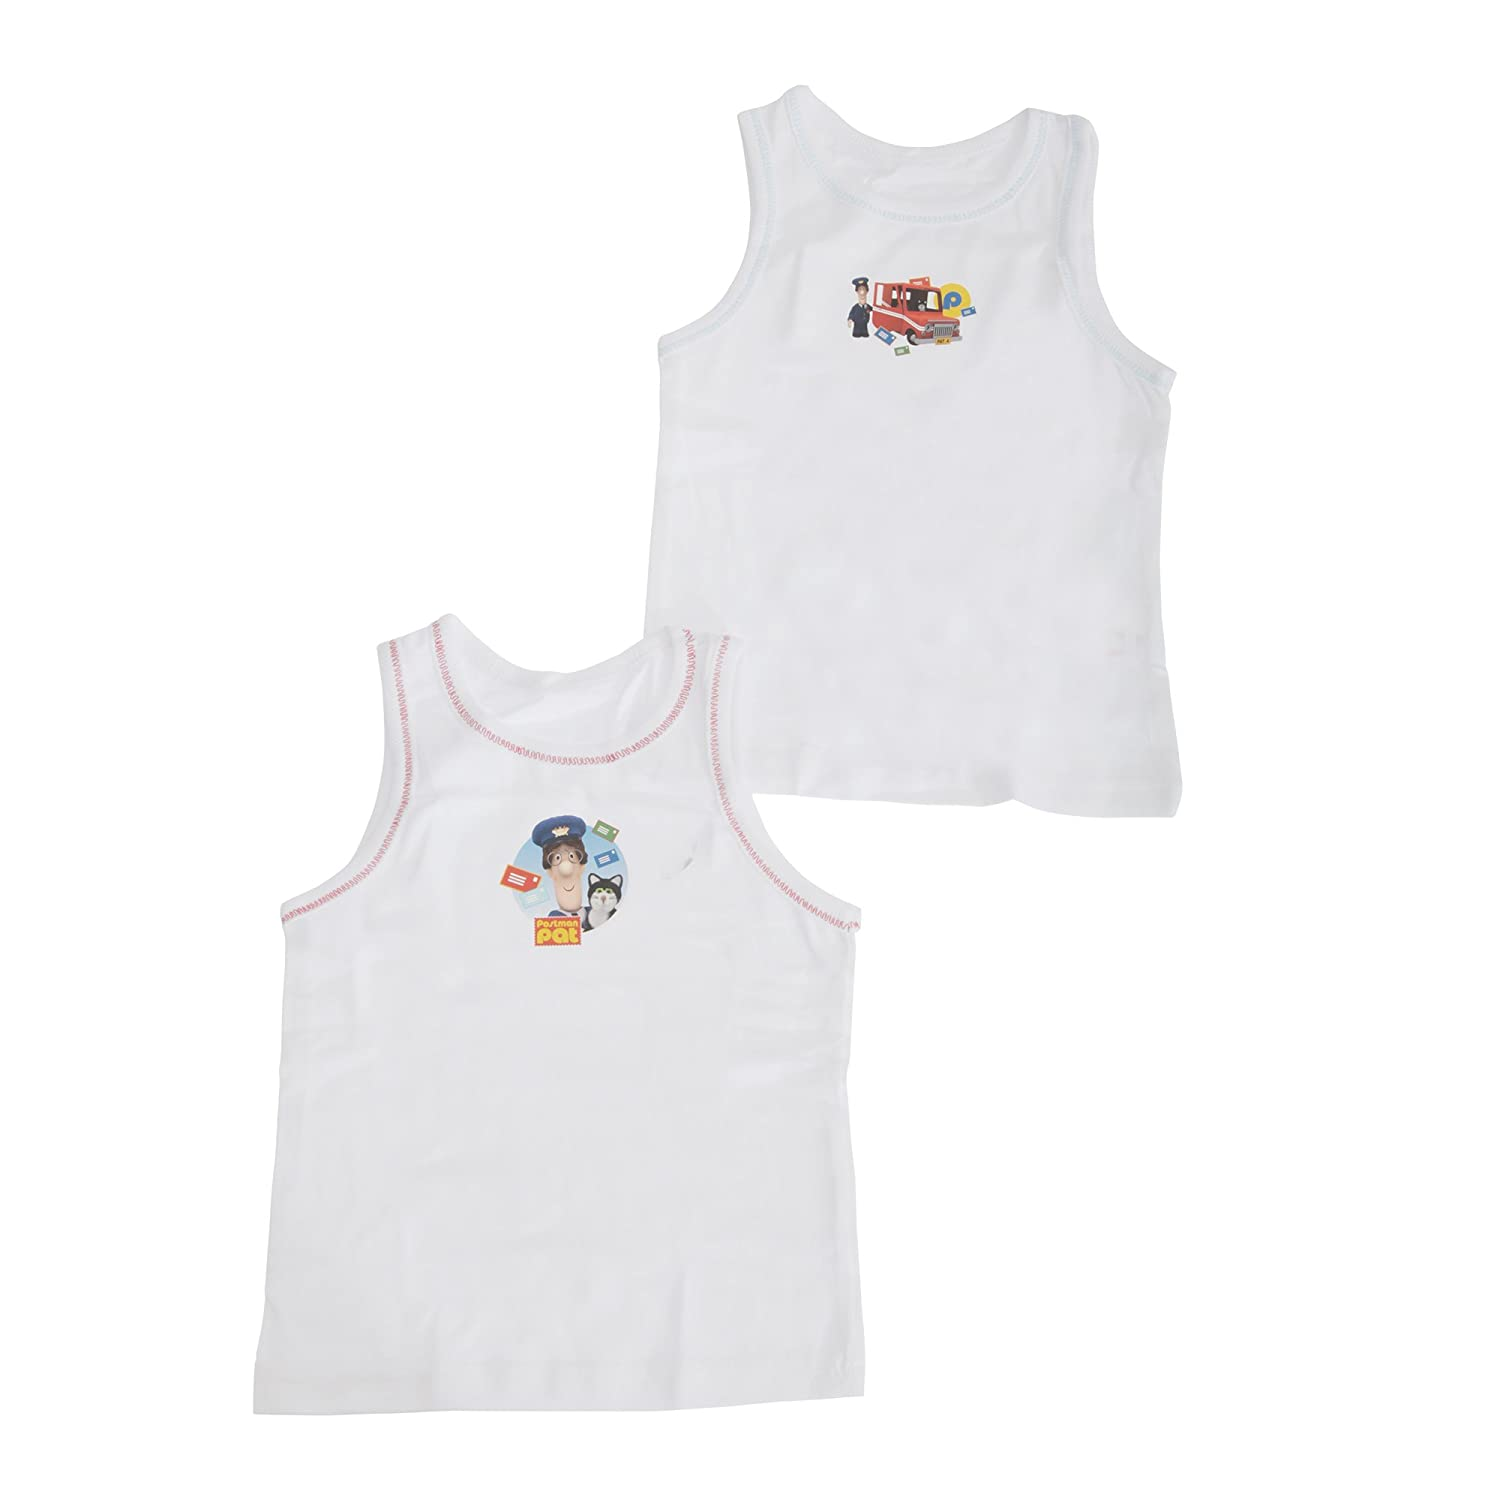 Postman Pat Childrens Boys Official Cotton Vests (Pack Of 2)